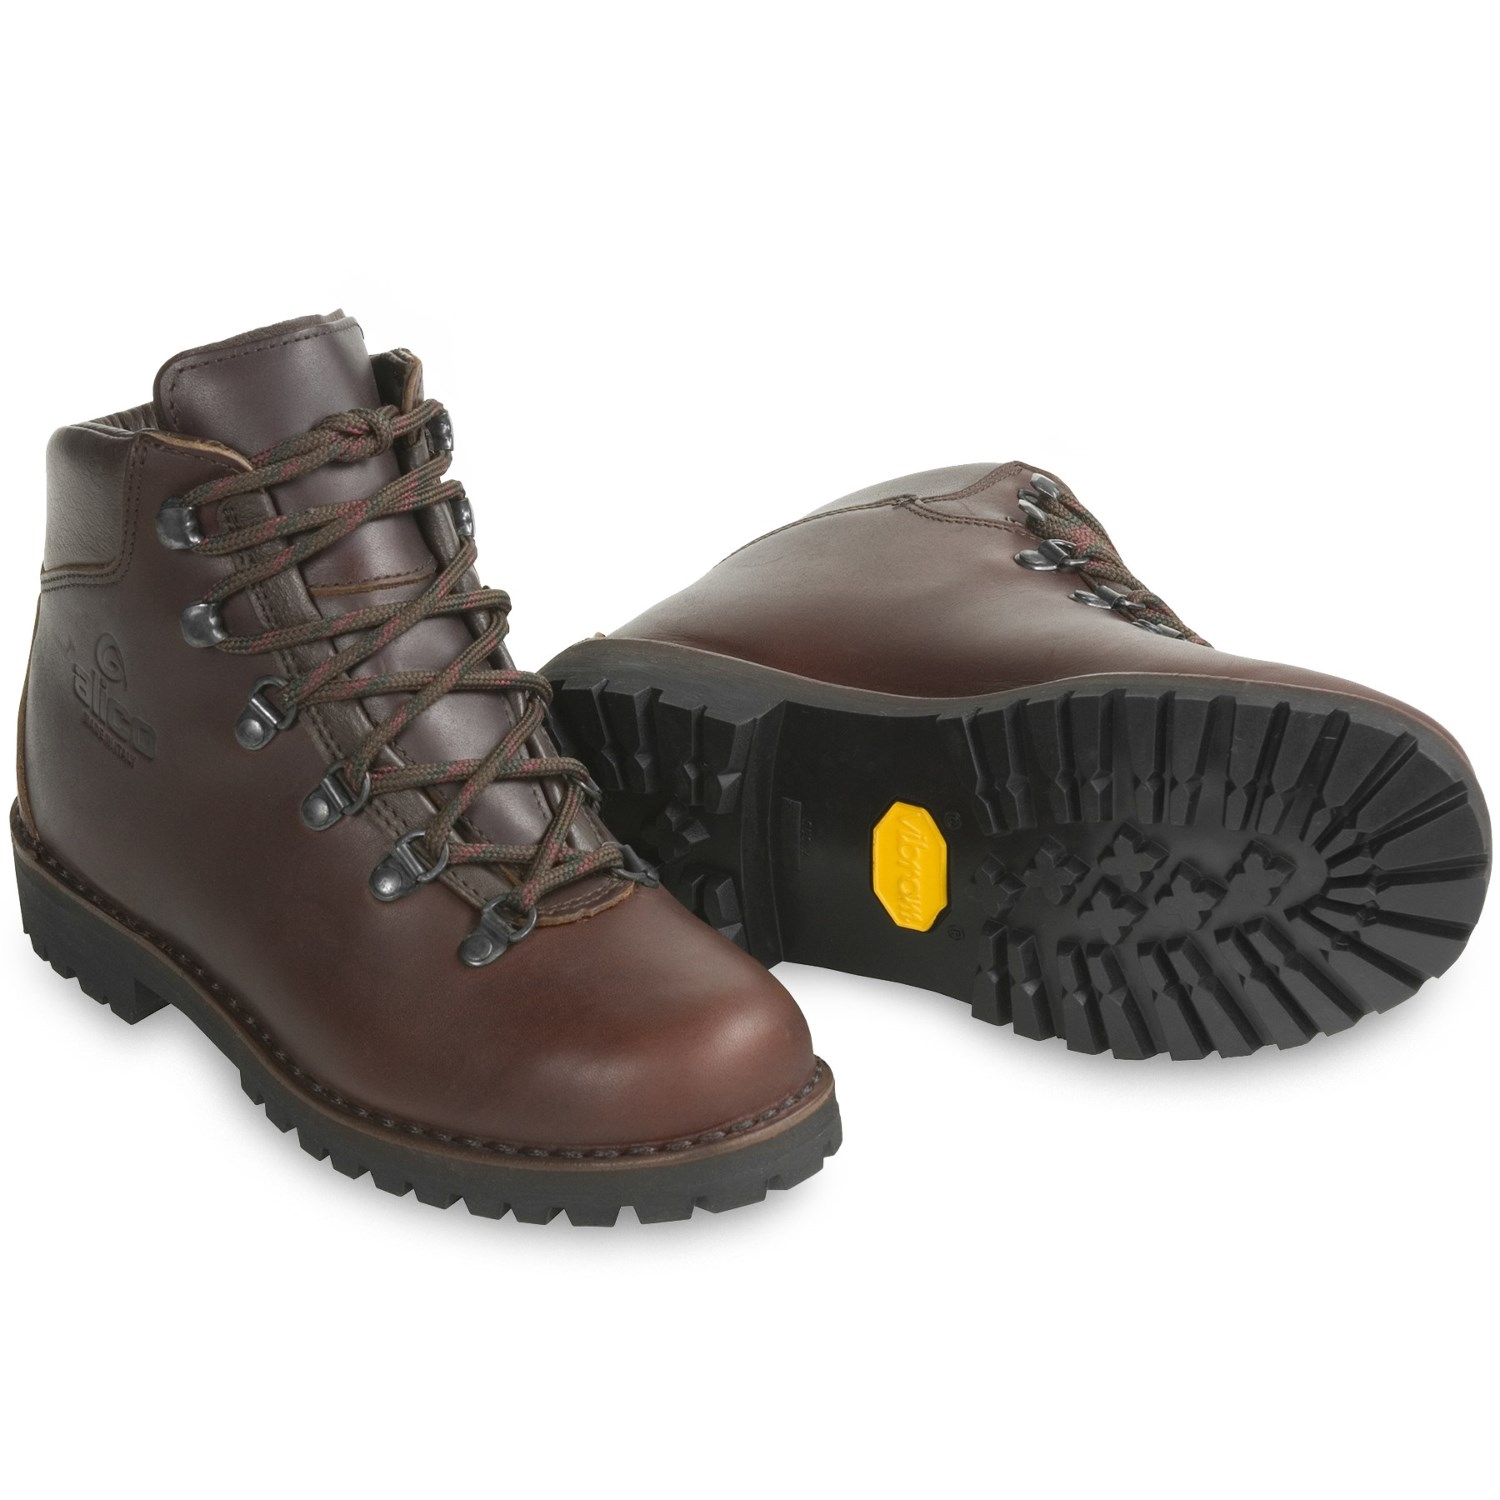 88a0cf86850 Alico Made in Italy Tahoe Leather Hiking Boots (For Women)